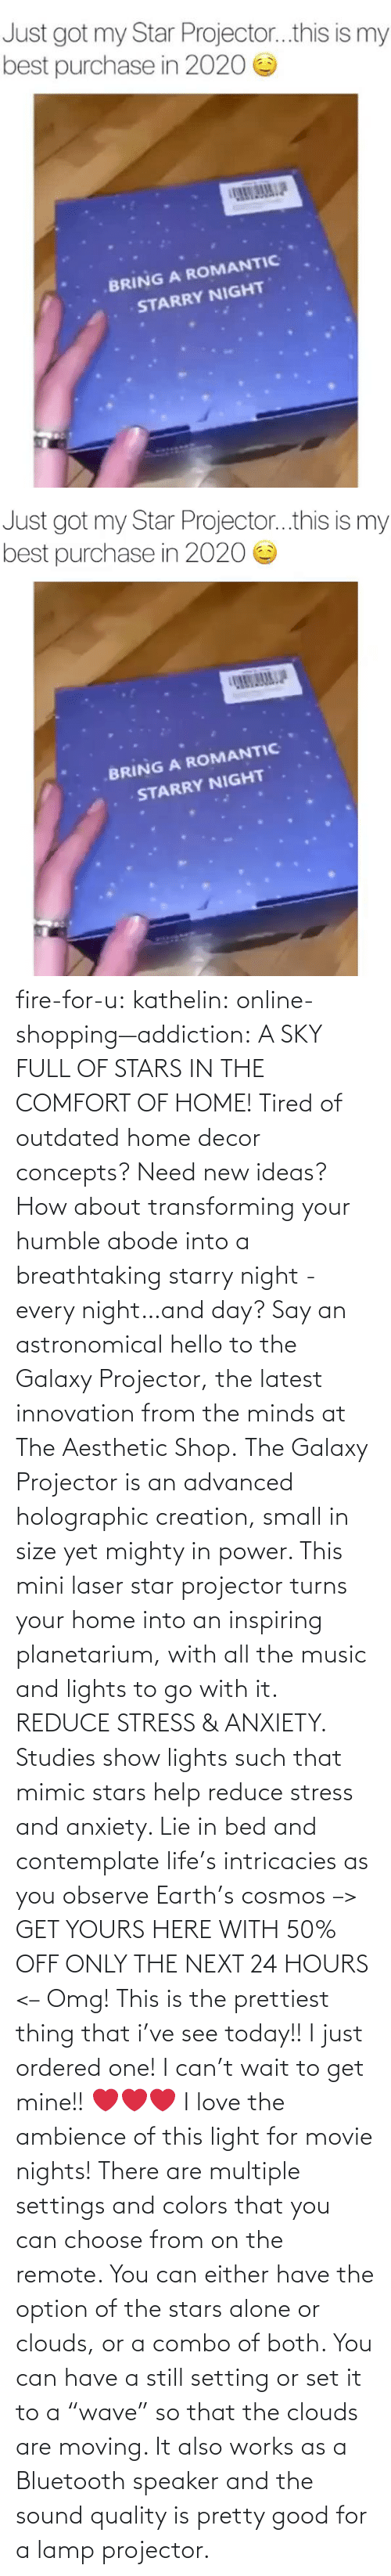 "pretty: fire-for-u:  kathelin: online-shopping—addiction:  A SKY FULL OF STARS IN THE COMFORT OF HOME! Tired of outdated home decor concepts? Need new ideas? How about transforming your humble abode into a breathtaking starry night - every night…and day? Say an astronomical hello to the Galaxy Projector, the latest innovation from the minds at The Aesthetic Shop. The Galaxy Projector is an advanced holographic creation, small in size yet mighty in power. This mini laser star projector turns your home into an inspiring planetarium, with all the music and lights to go with it. REDUCE STRESS & ANXIETY. Studies show lights such that mimic stars help reduce stress and anxiety. Lie in bed and contemplate life's intricacies as you observe Earth's cosmos  –> GET YOURS HERE WITH 50% OFF ONLY THE NEXT 24 HOURS <–   Omg! This is the prettiest thing that i've see today!! I just ordered one! I can't wait to get mine!! ❤️️❤️️❤️️  I love the ambience of this light for movie nights! There are multiple settings and colors that you can choose from on the remote. You can either have the option of the stars alone or clouds, or a combo of both. You can have a still setting or set it to a ""wave"" so that the clouds are moving. It also works as a Bluetooth speaker and the sound quality is pretty good for a lamp projector."